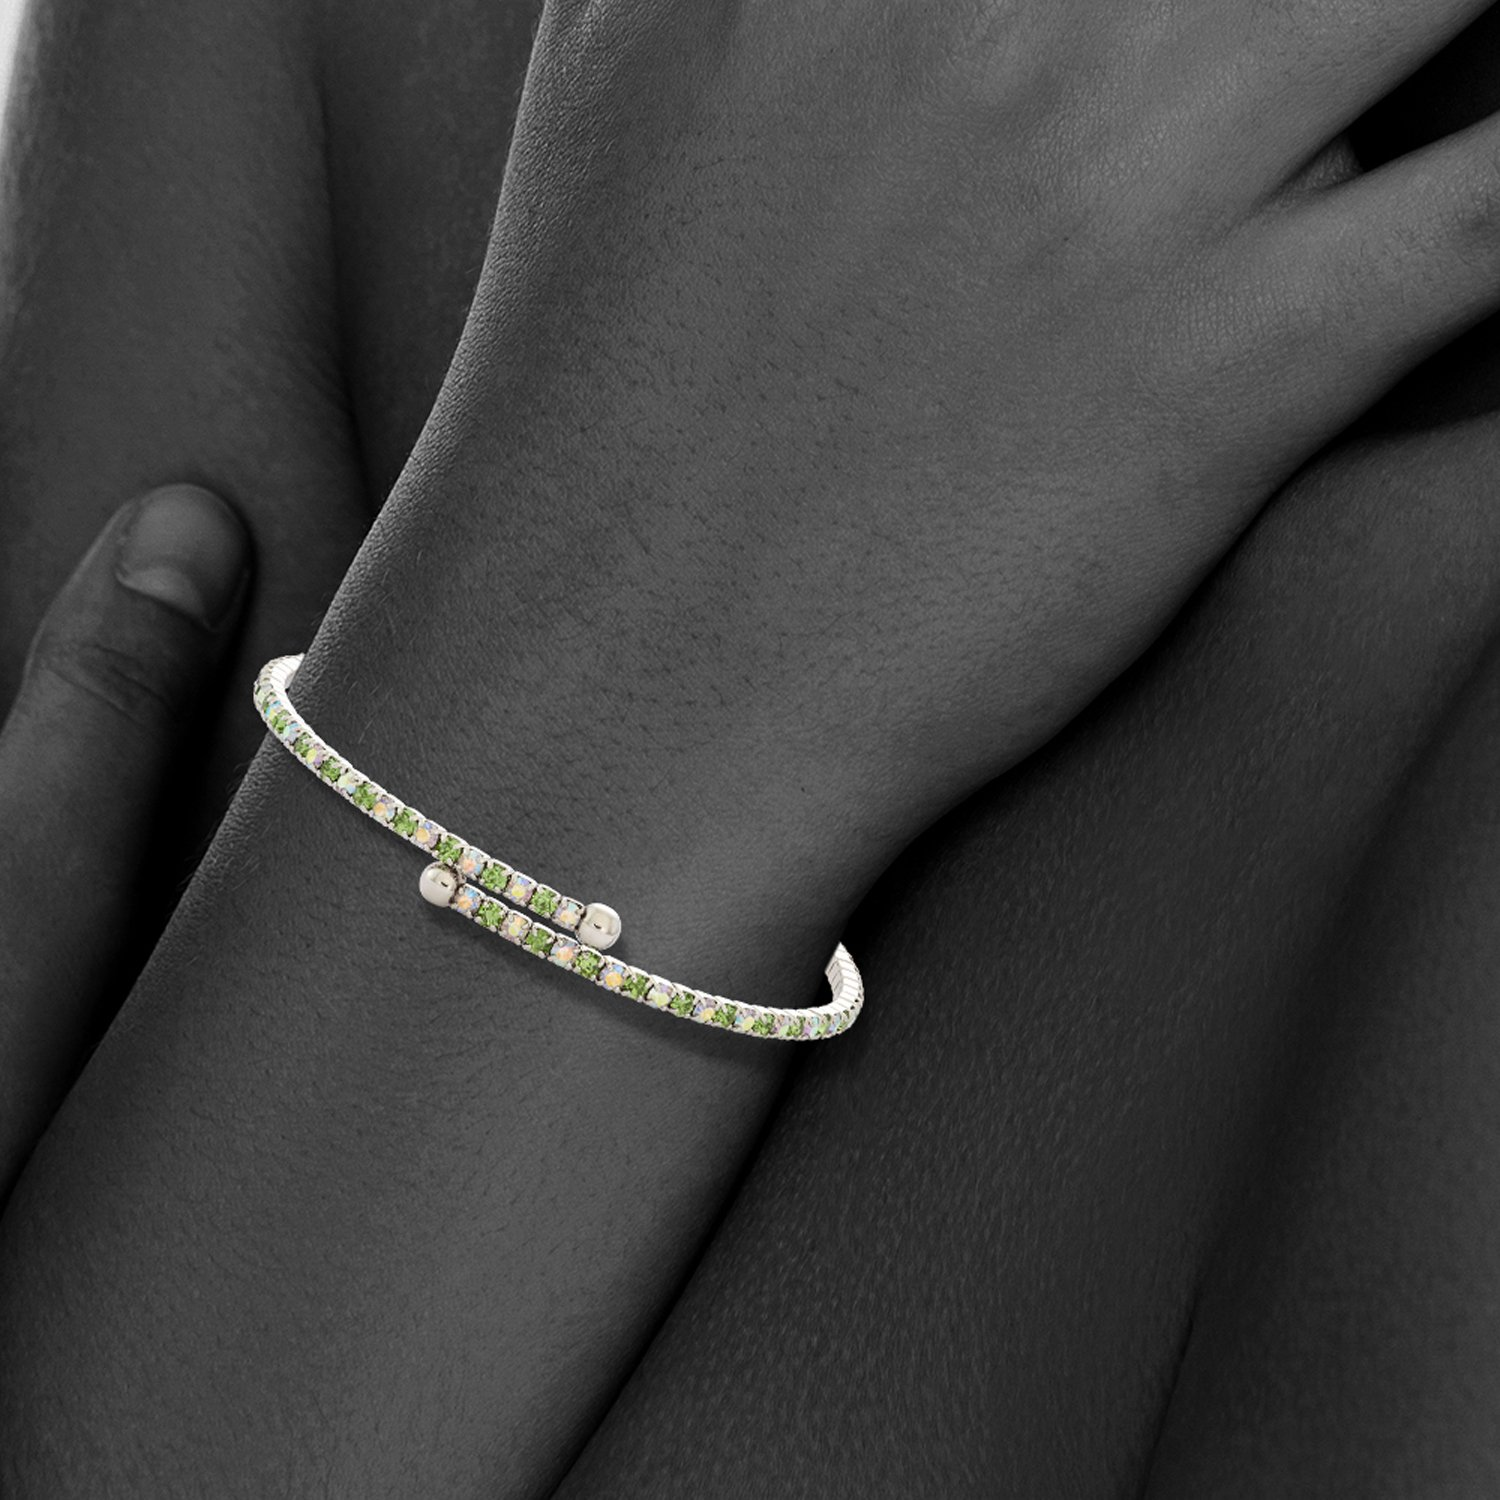 Collection Bijoux Rhodium Plated Single Wrap Light Green and Iridescent Crystal Flex Bangle Bracelet